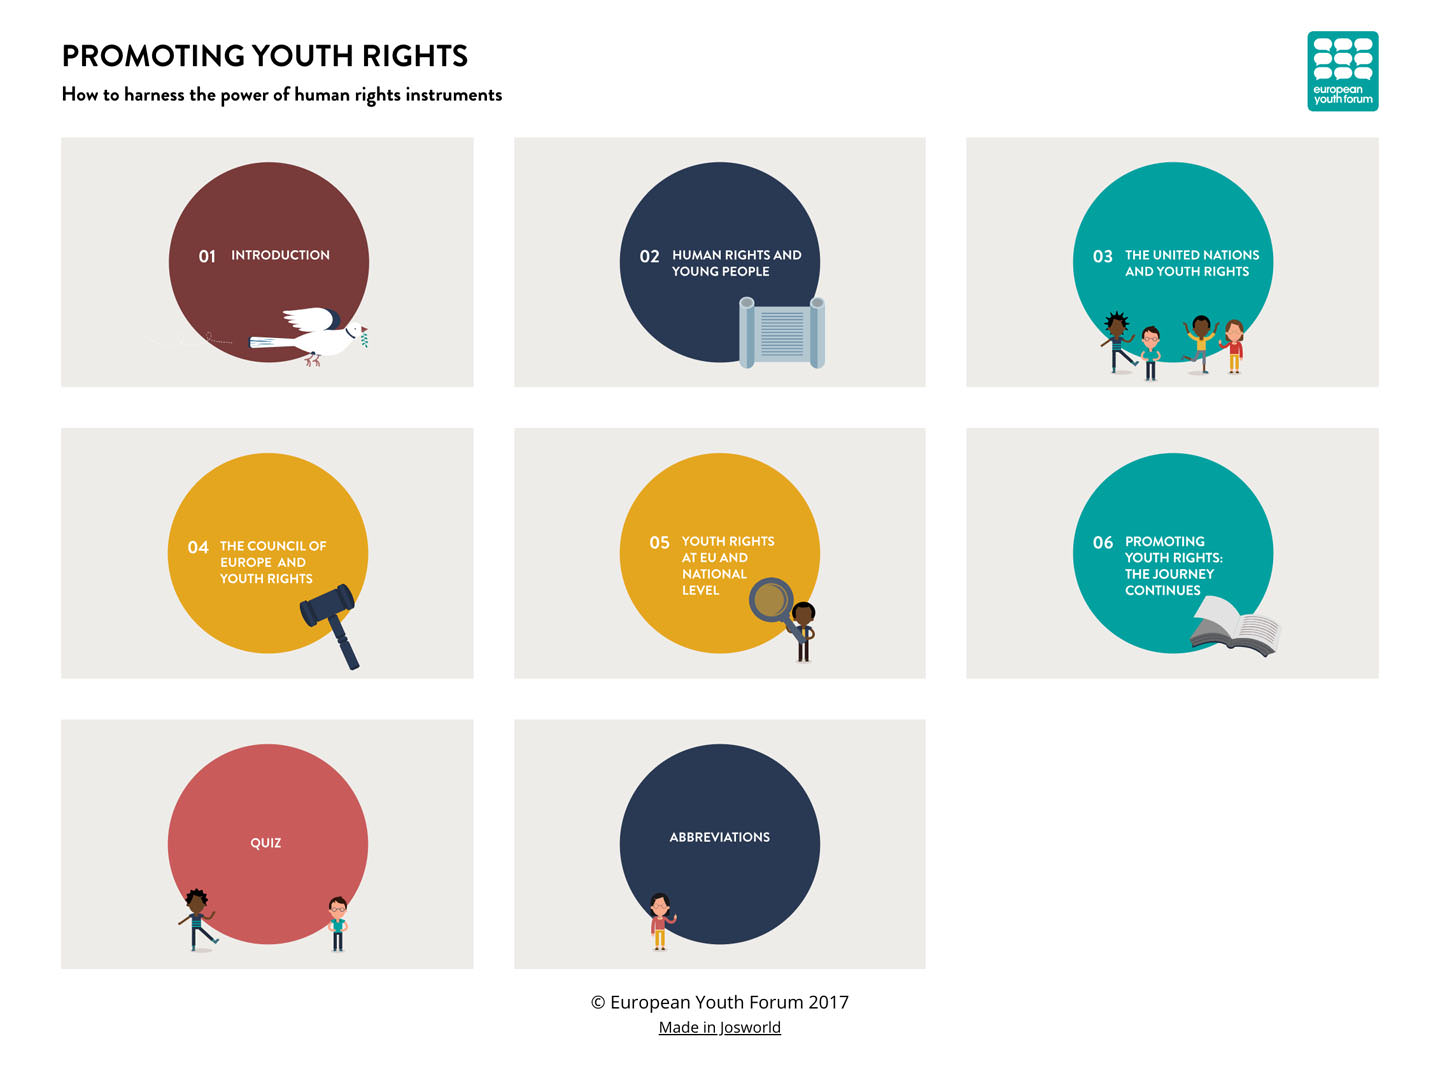 European Youth Forum - Promoting Youth Rights (development of website)